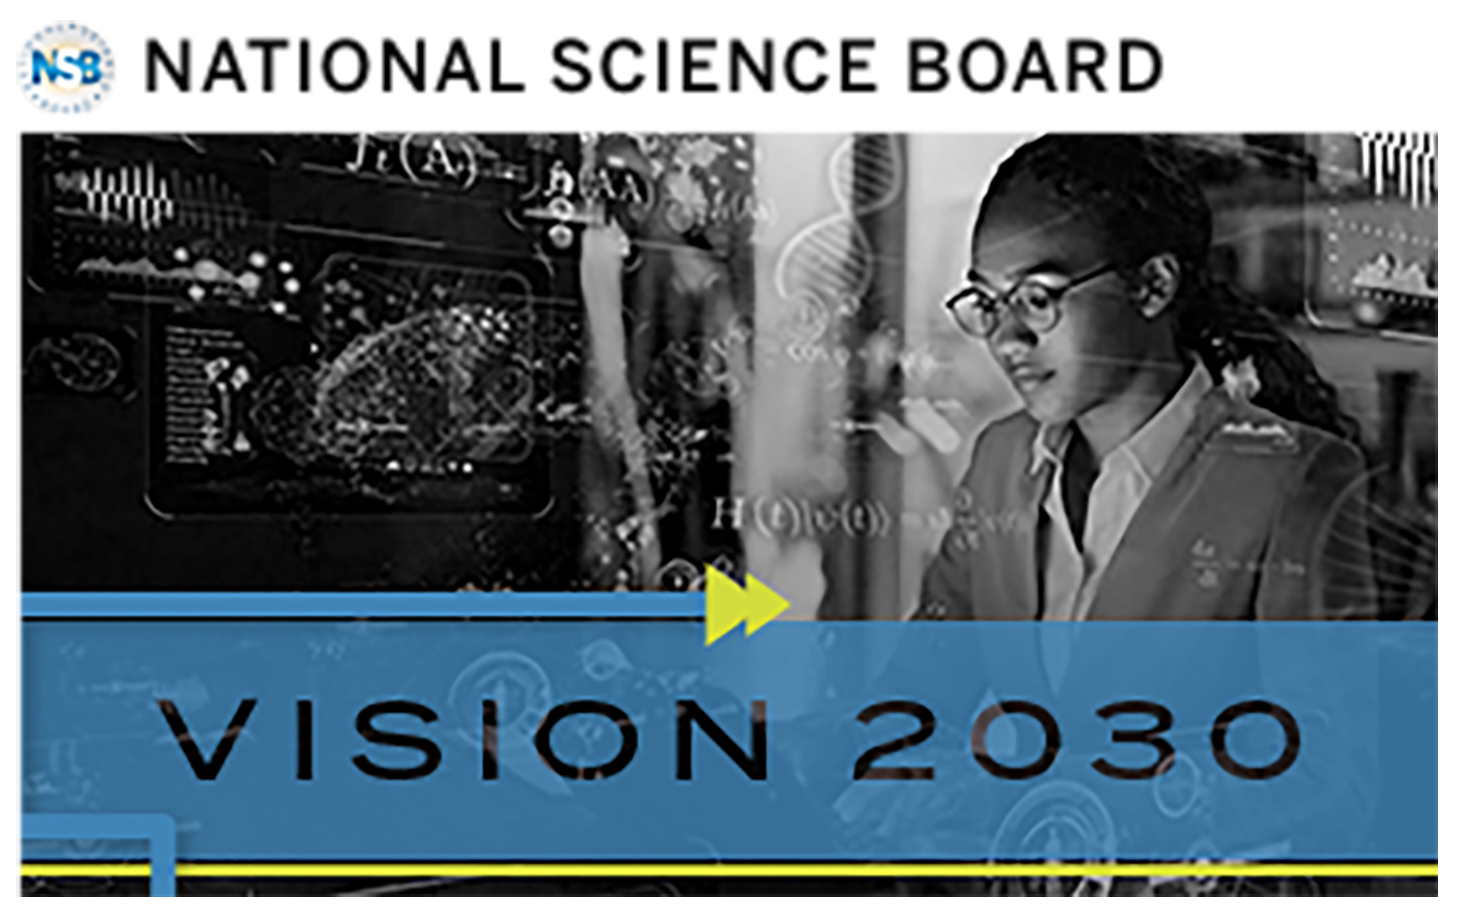 NSB Vision 2030 Cover